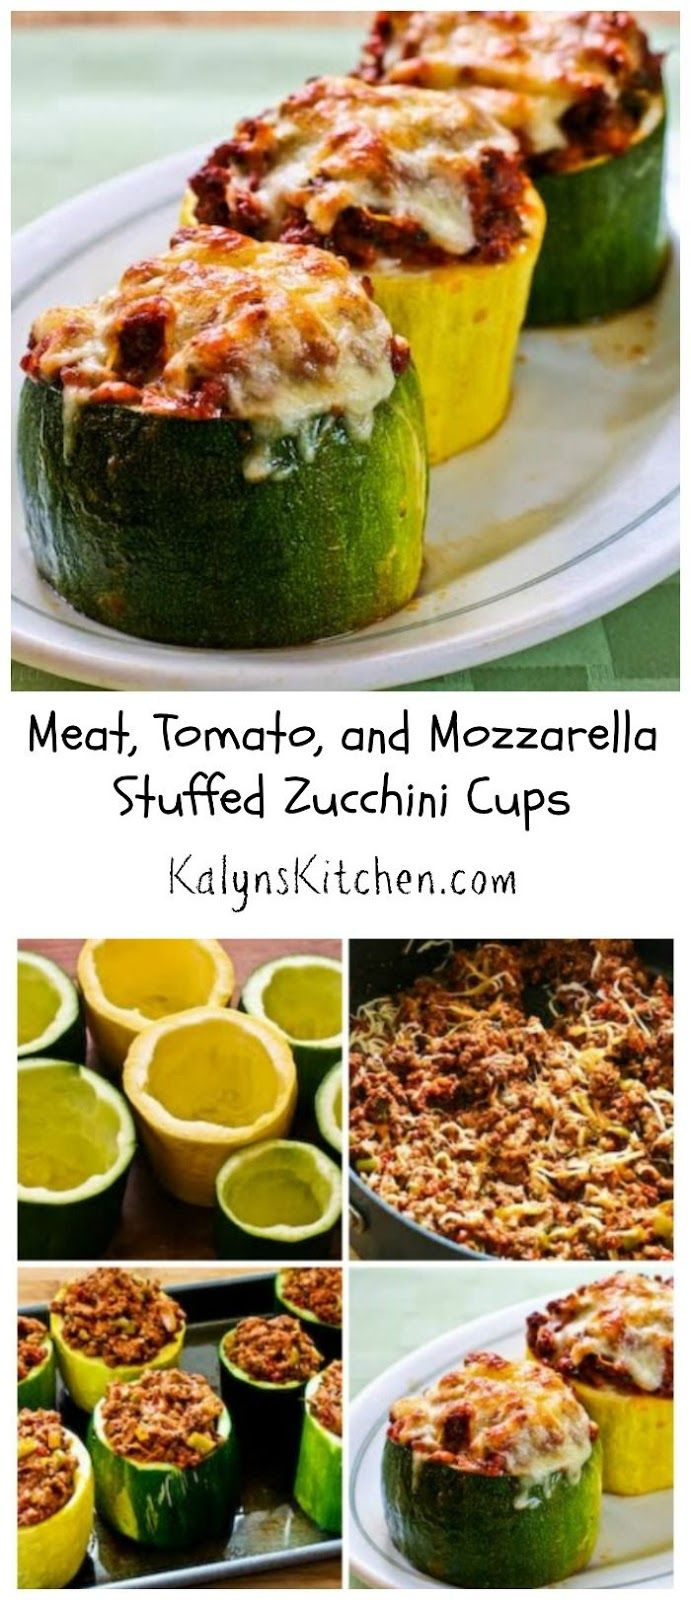 17 Best ideas about Zucchini Cups on Pinterest | No carb ...